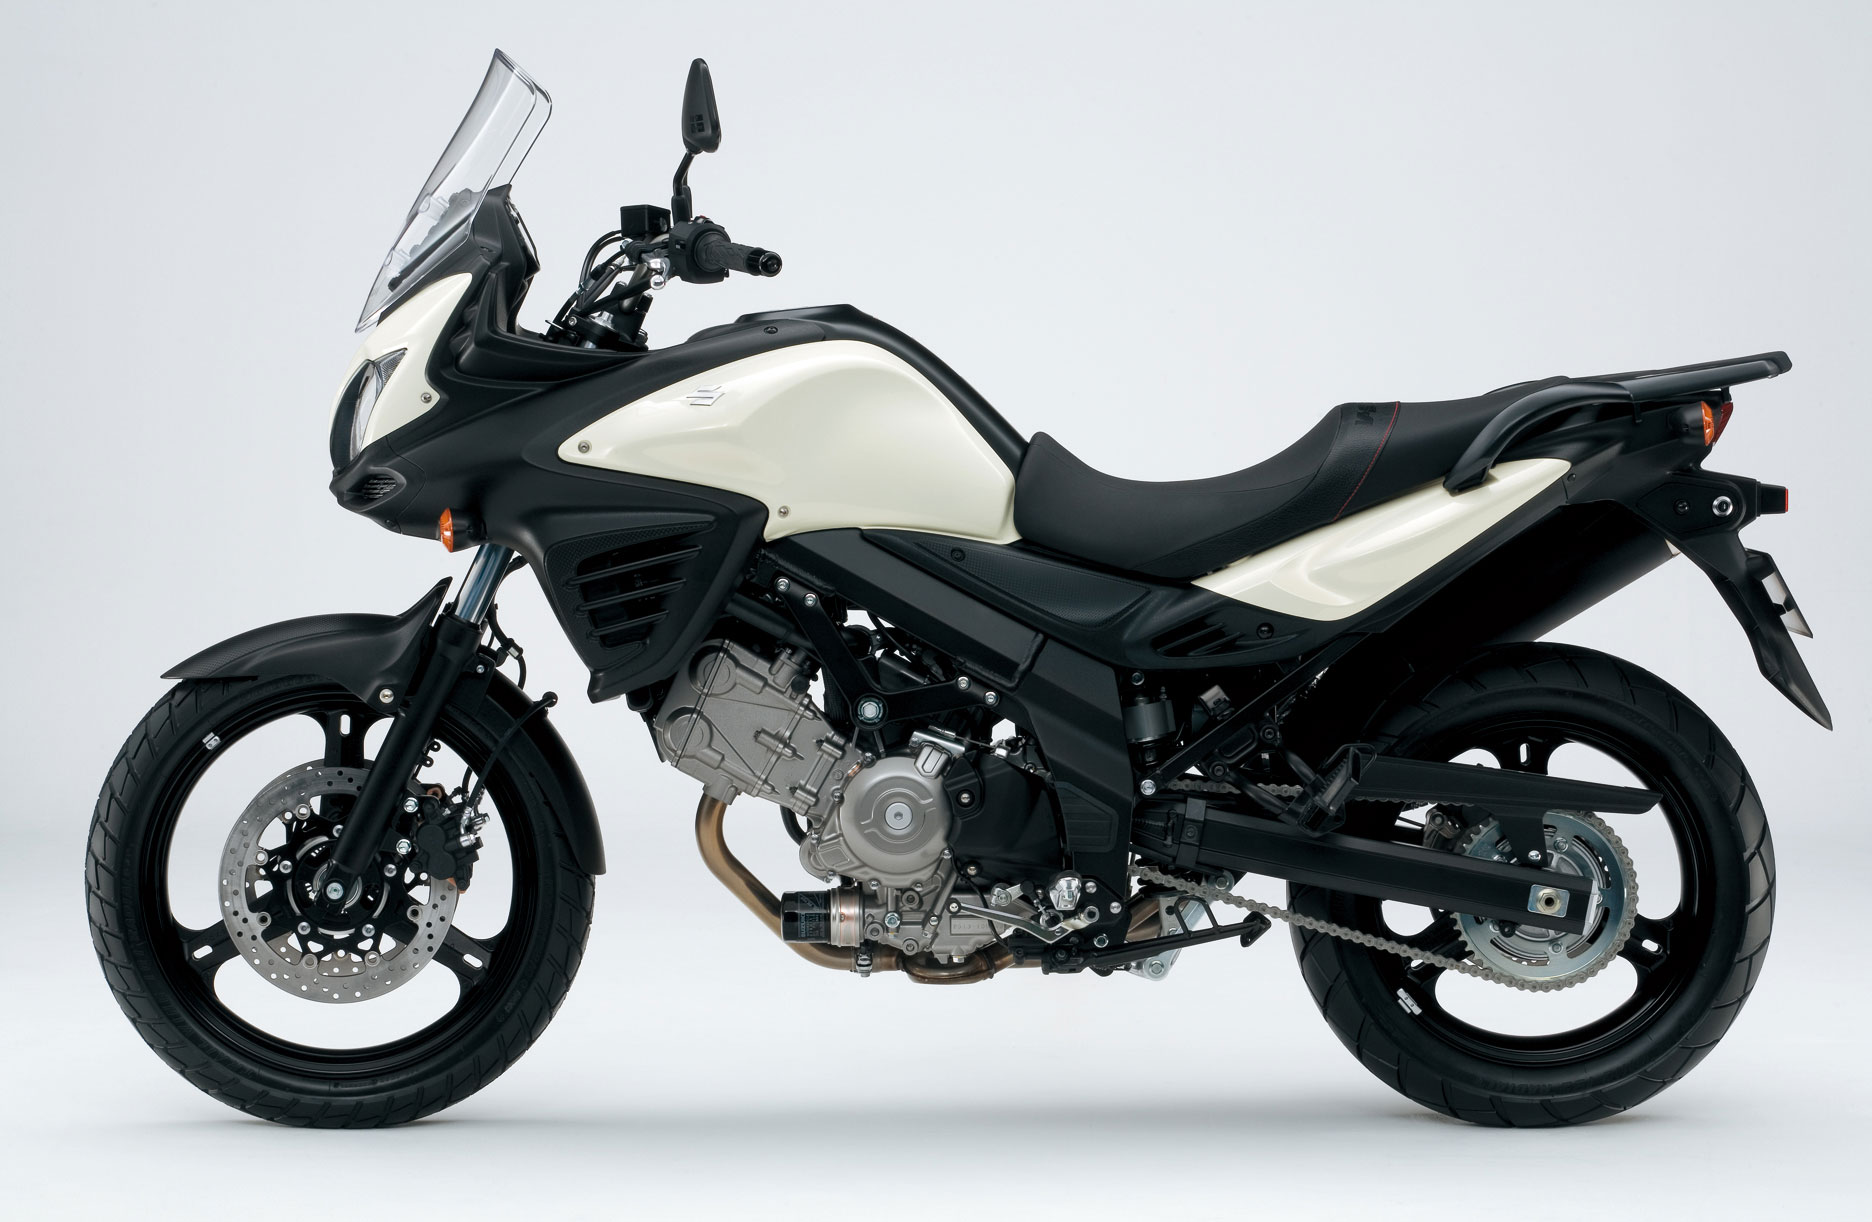 2013 Suzuki DL650 V-Strom Service Manual